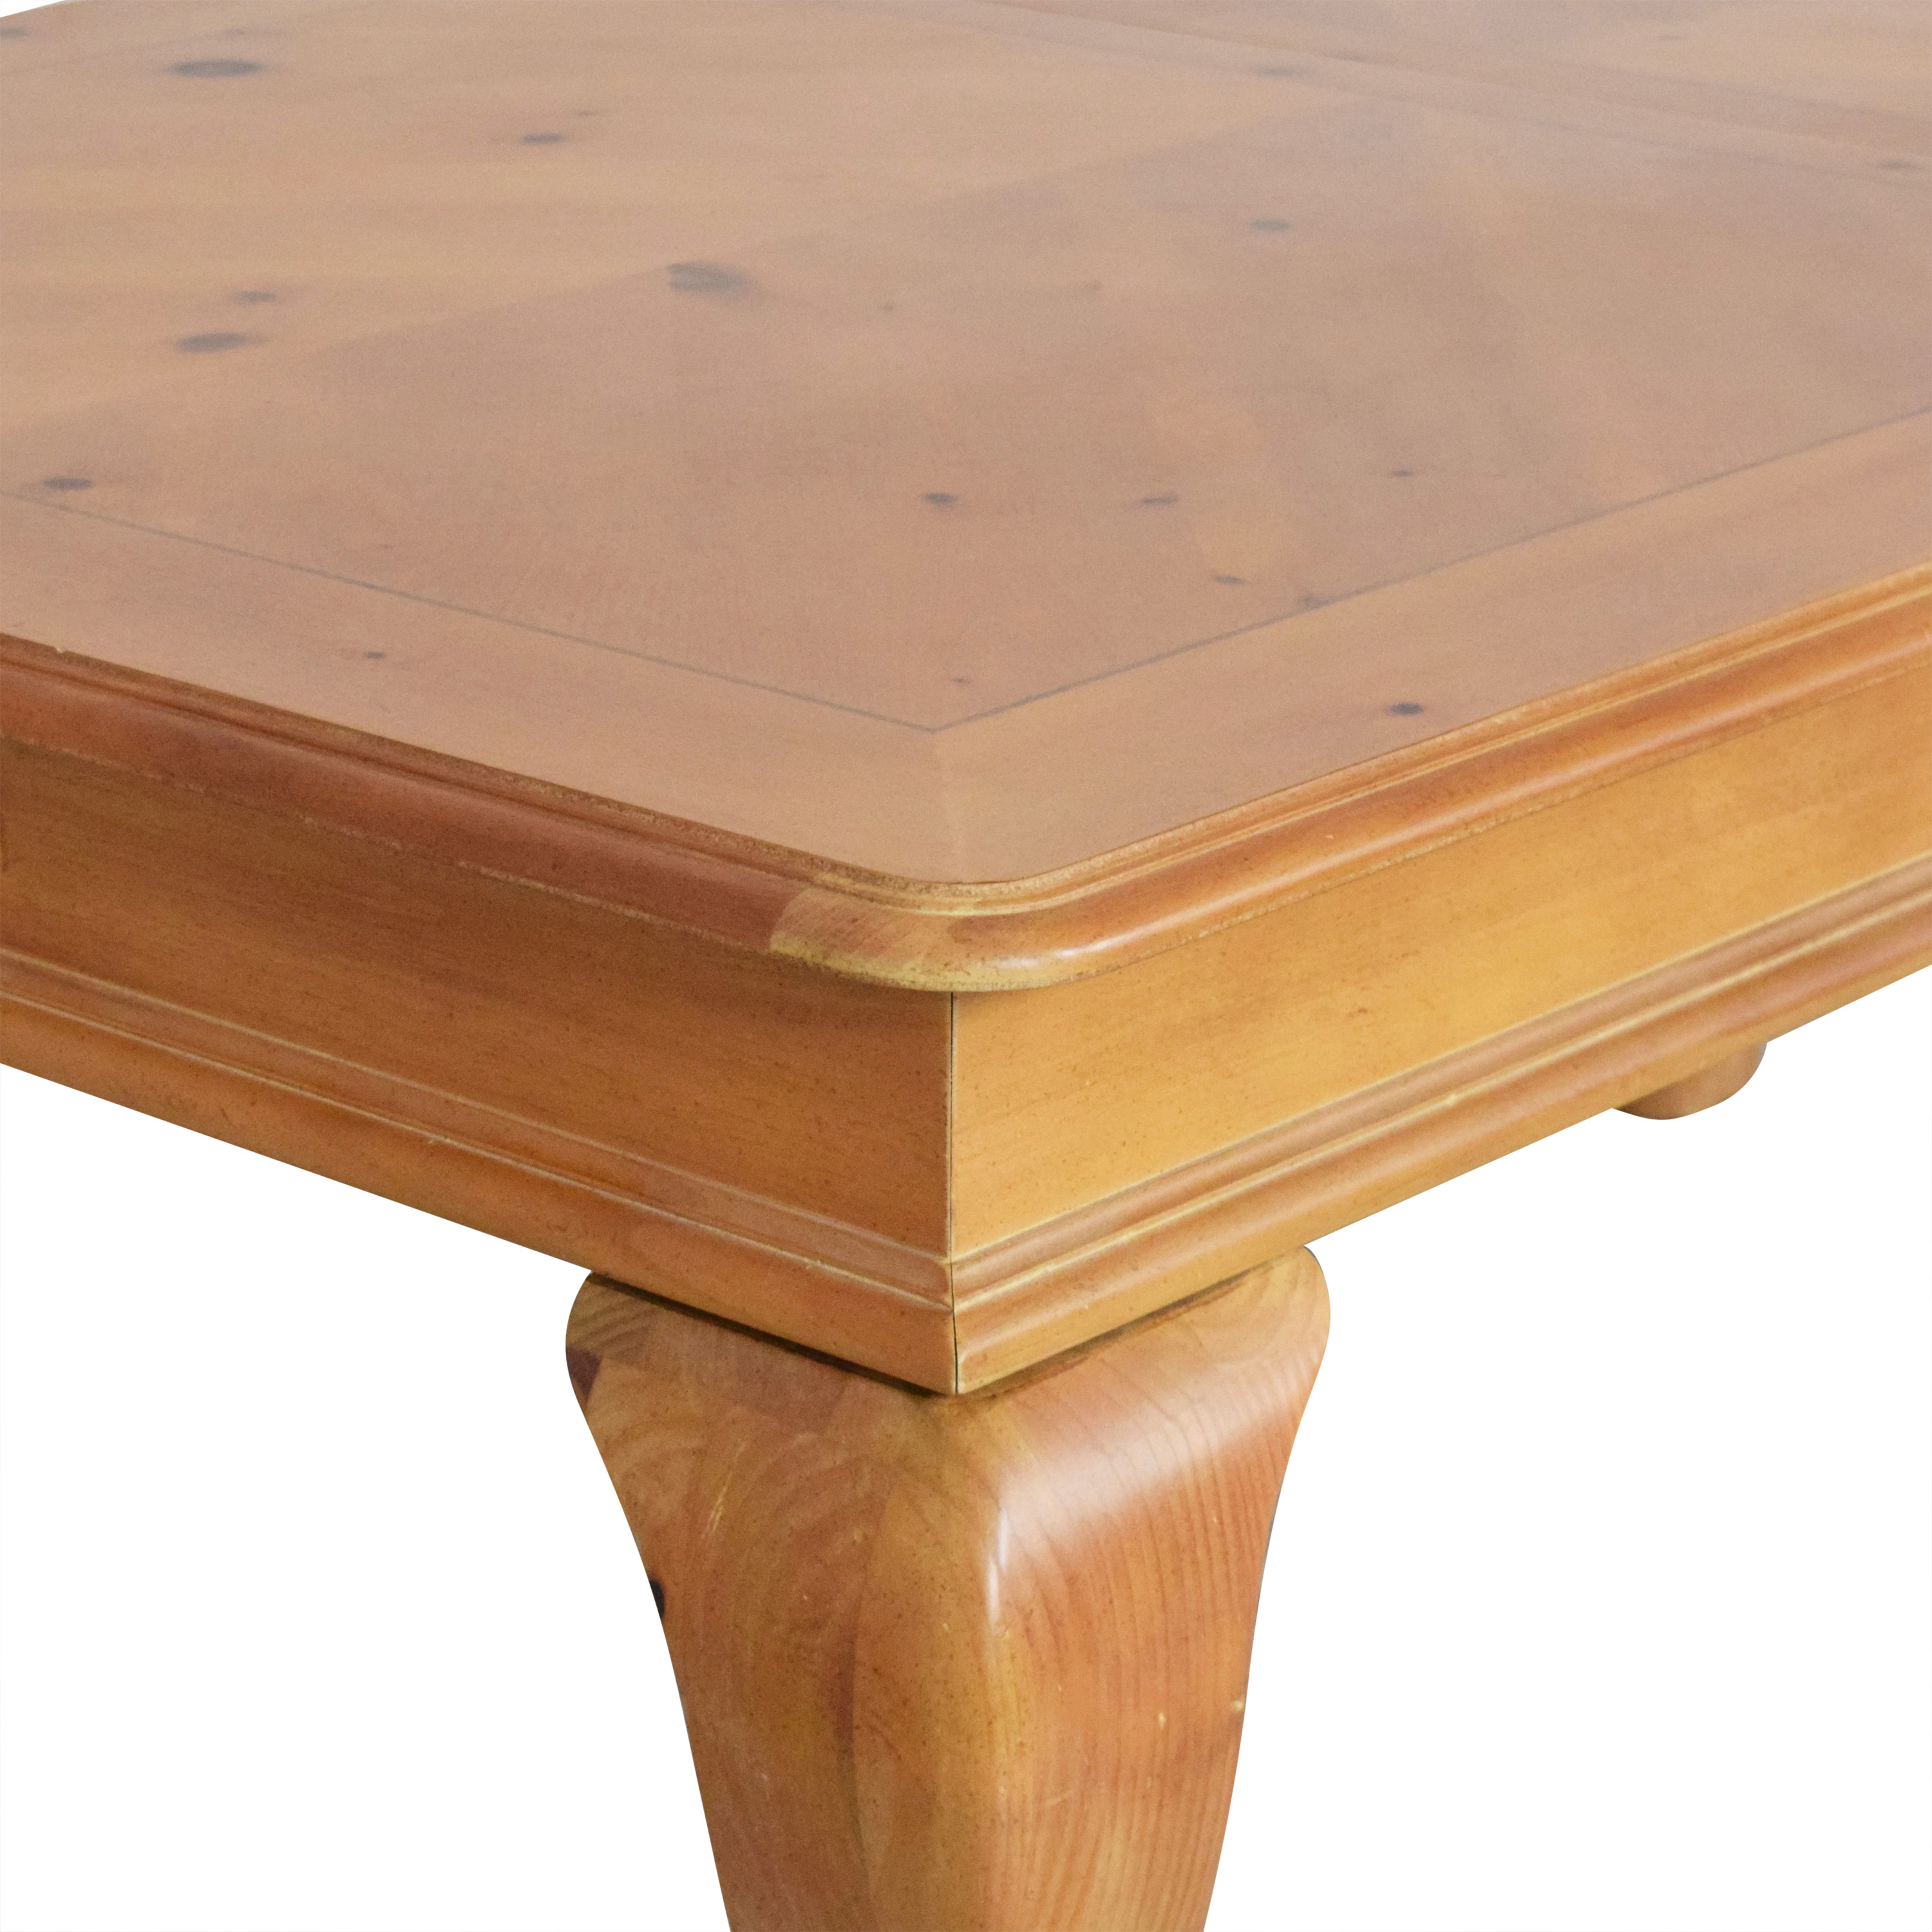 Thomasville Thomasville Extendable Chippendale Dining Table coupon